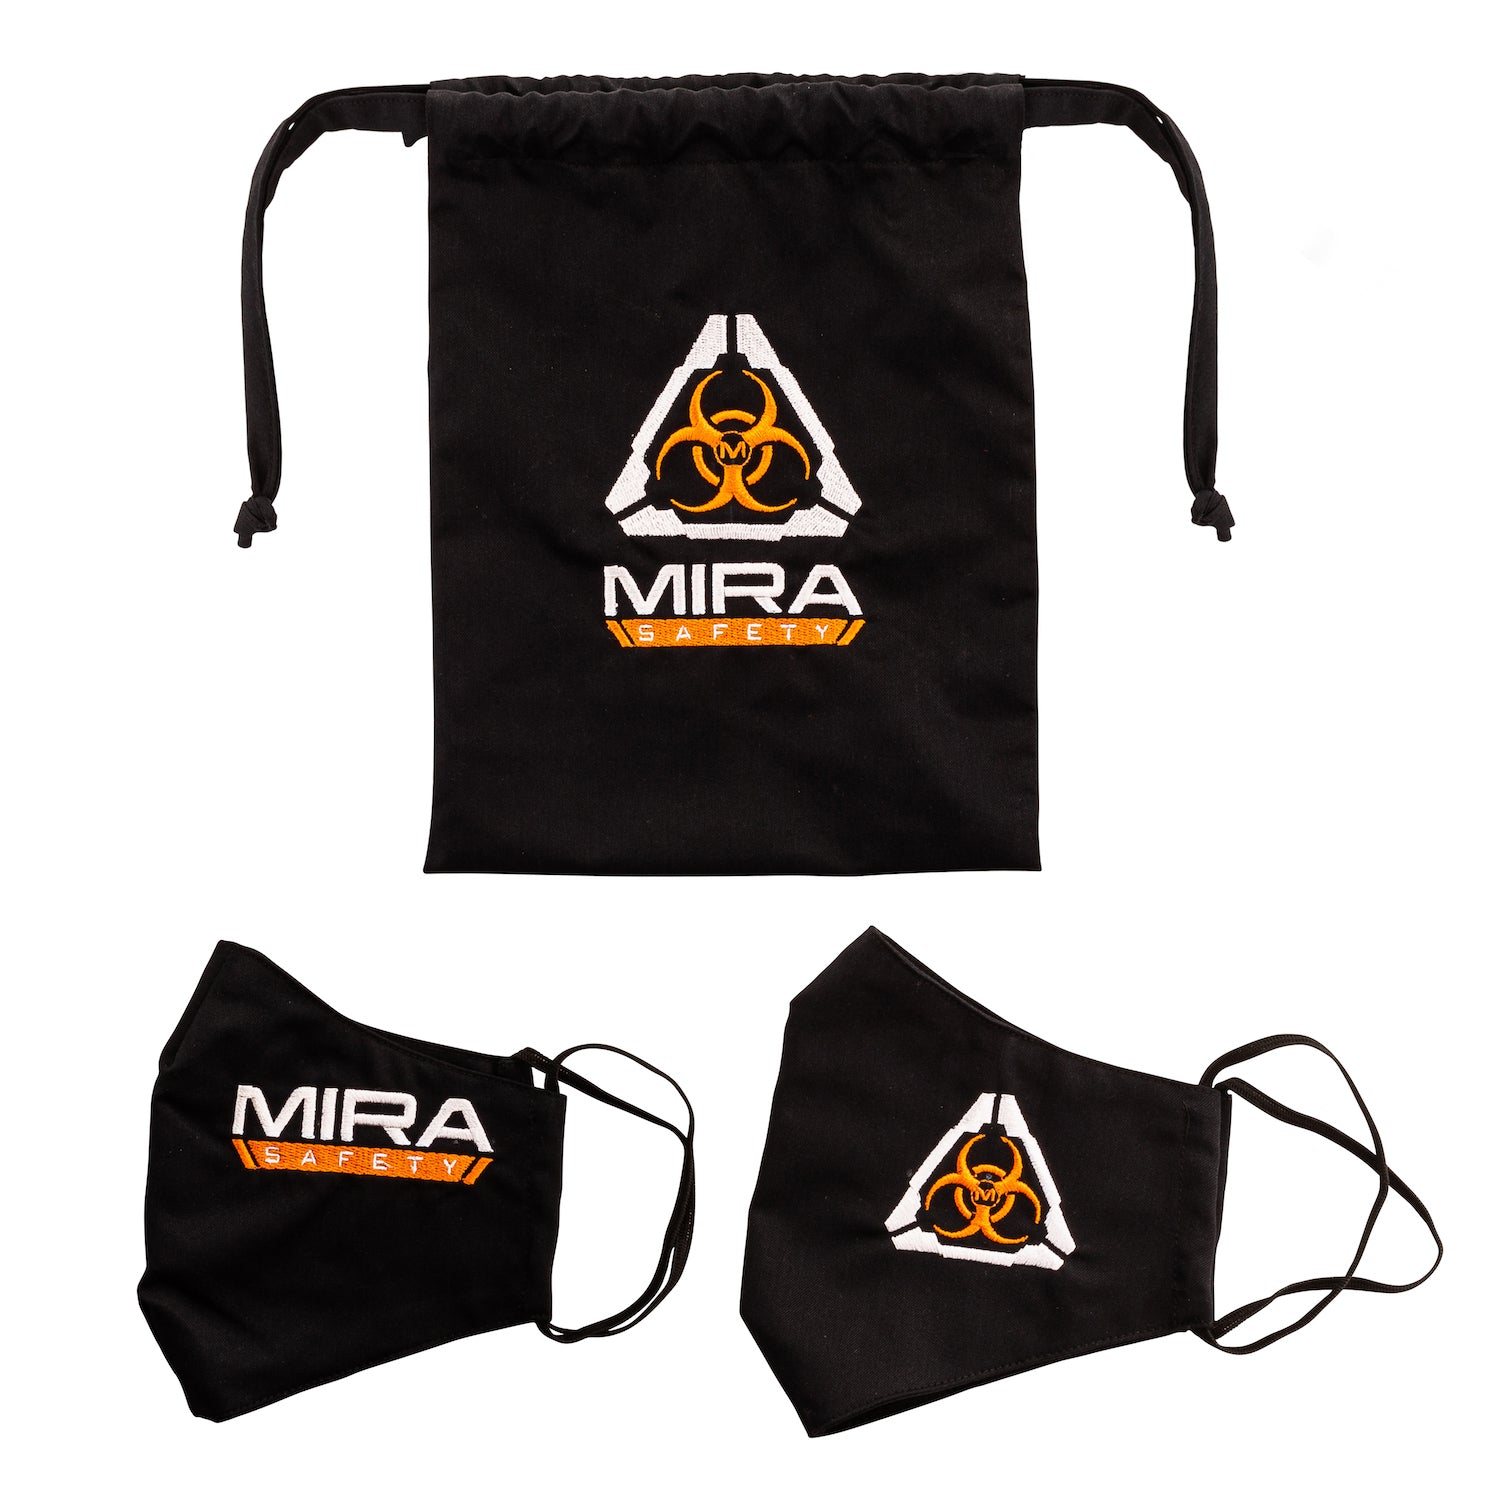 MIRA Safety Protective Face Mask Kit laid out on white background